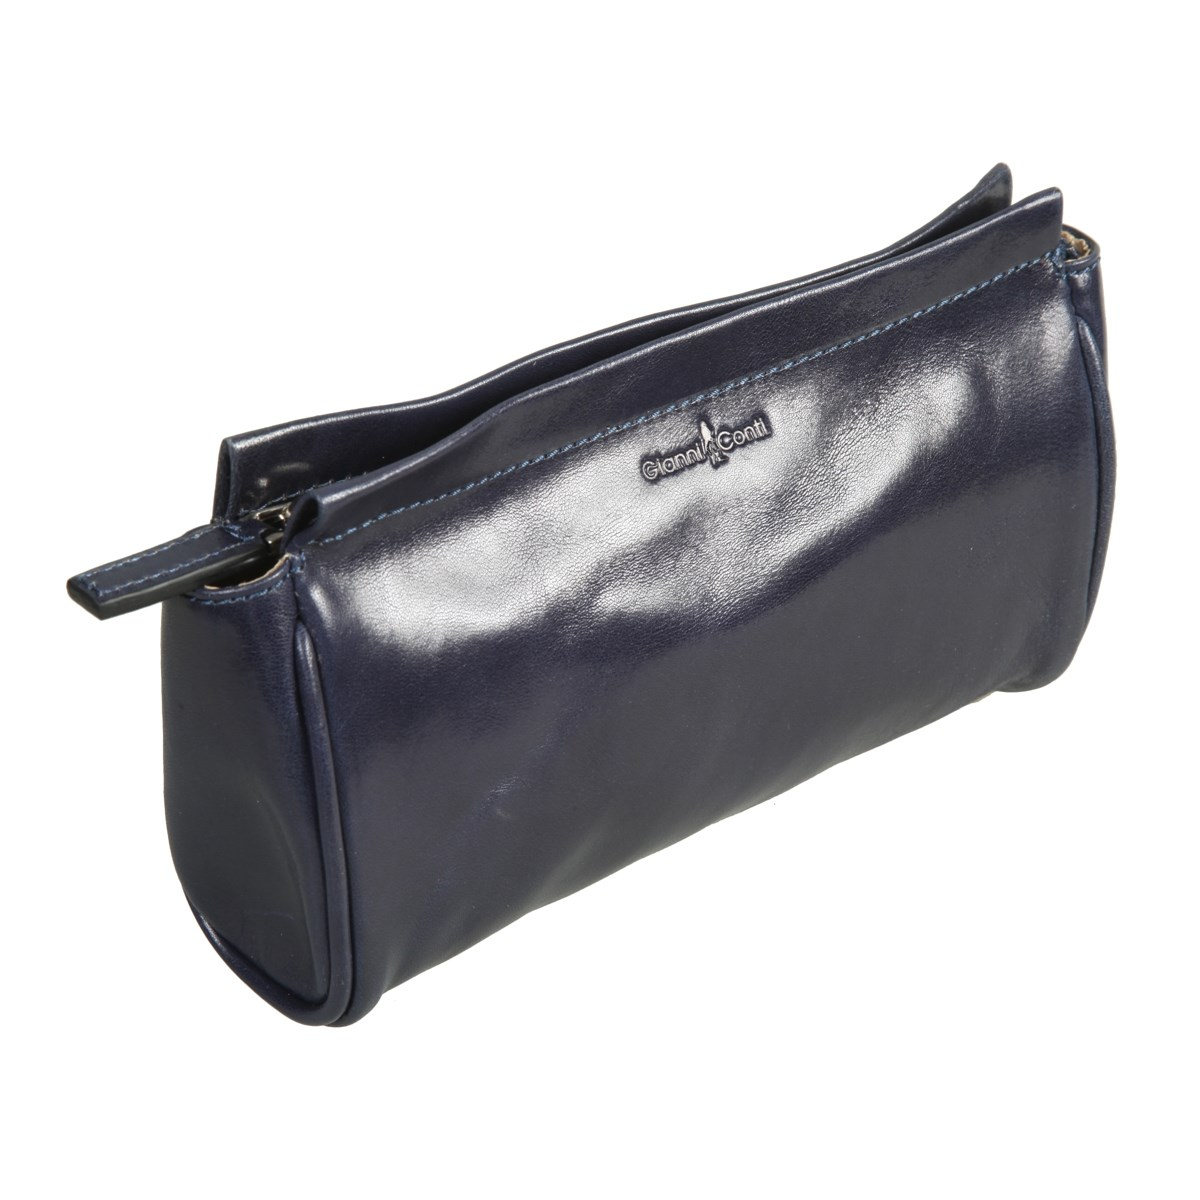 Фото - Make Up Bag Gianni Conti 9405197 jeans креативная кукла make up organizer bag women cosmetic bags ourdoor travel bag